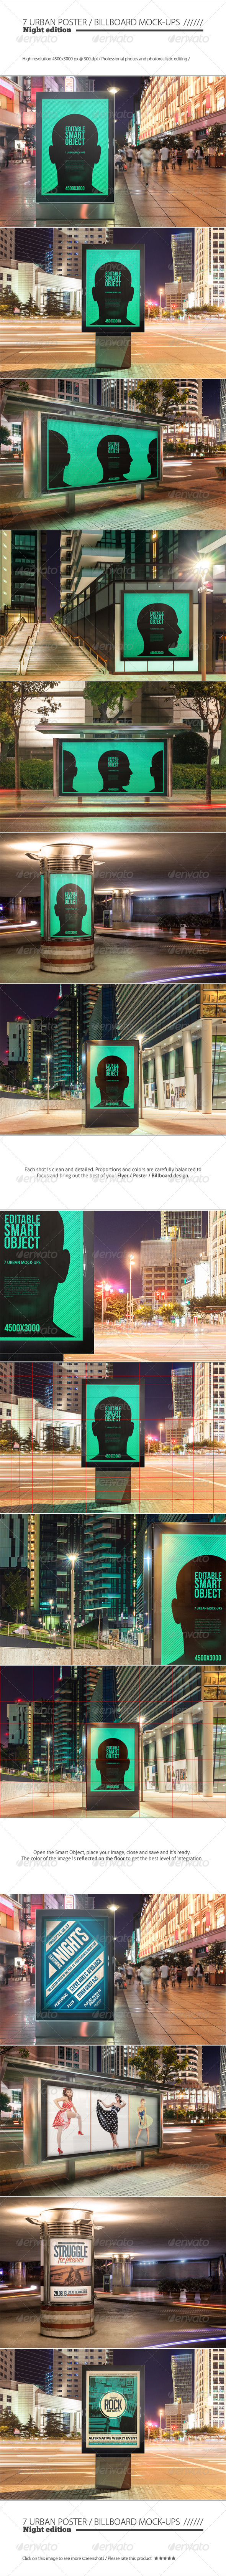 Urban Poster / Billboard Mock-ups - Night Edition - Posters Print